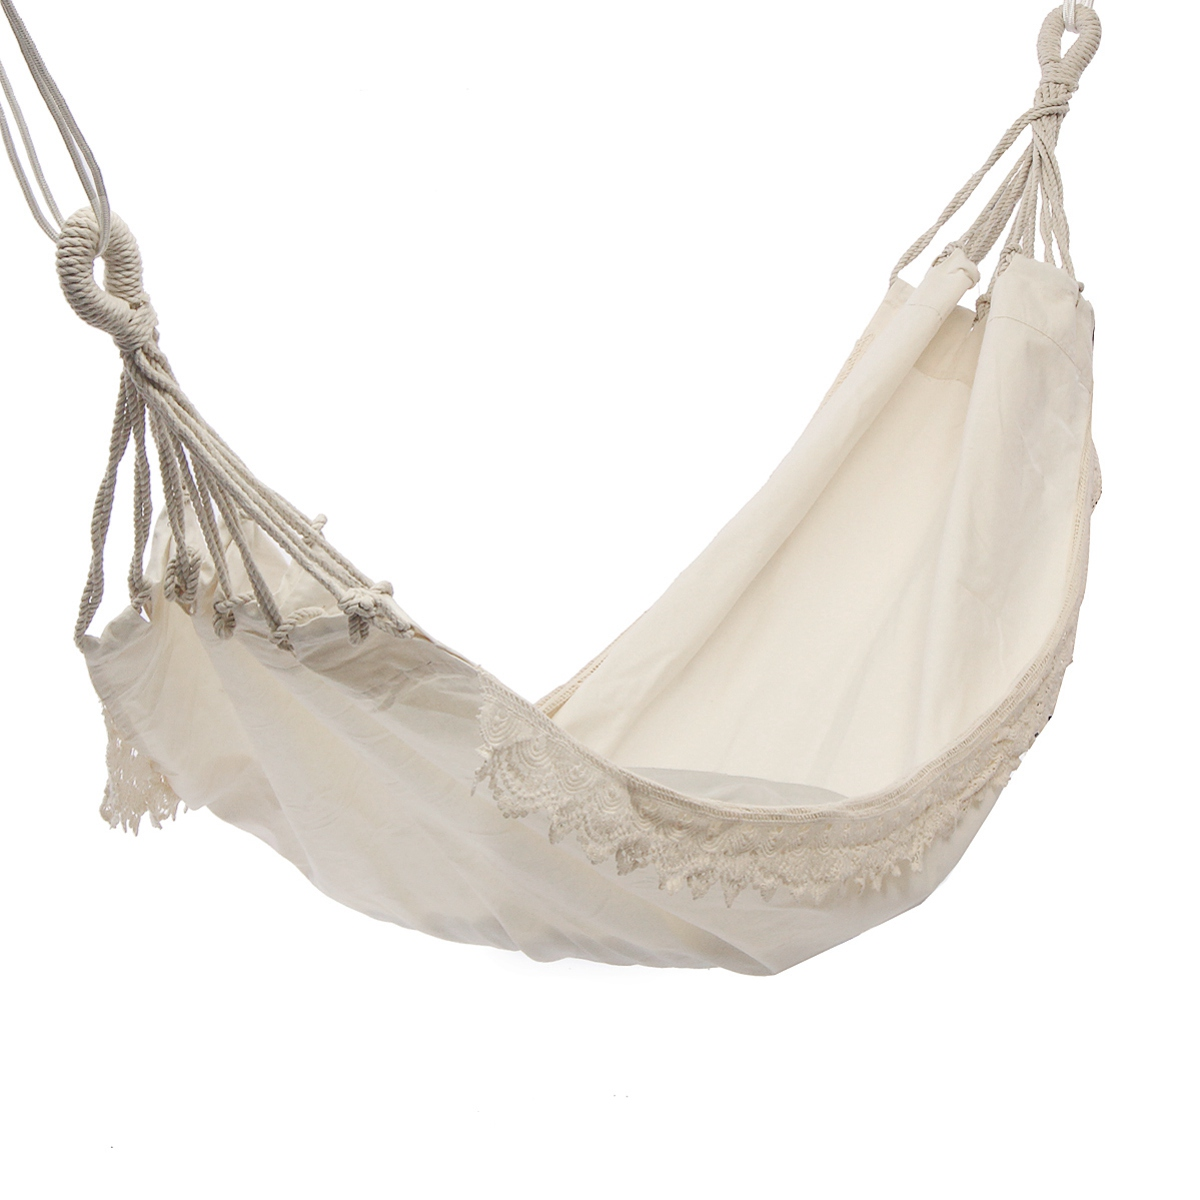 HOT Outdoor Camping Hammock Swing Portable Hanging Chair Pure White Romantic Lace For Travel Hiking Garden Sleeping Swing Port